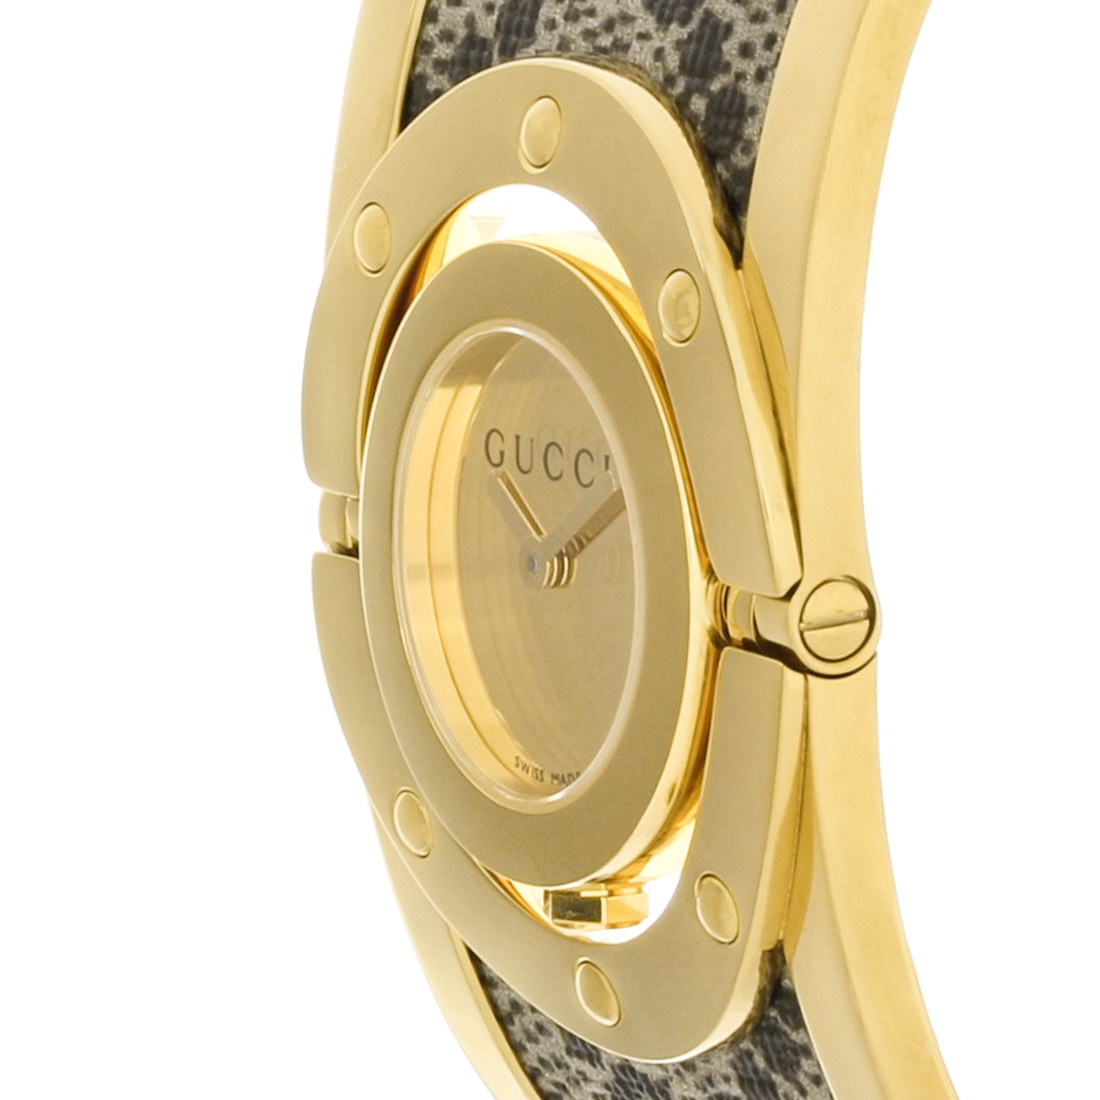 b796bd50fb9 Gucci 112 Twirl Ladies Gold Tone Plated Stainless Steel Quartz Watch  YA112443